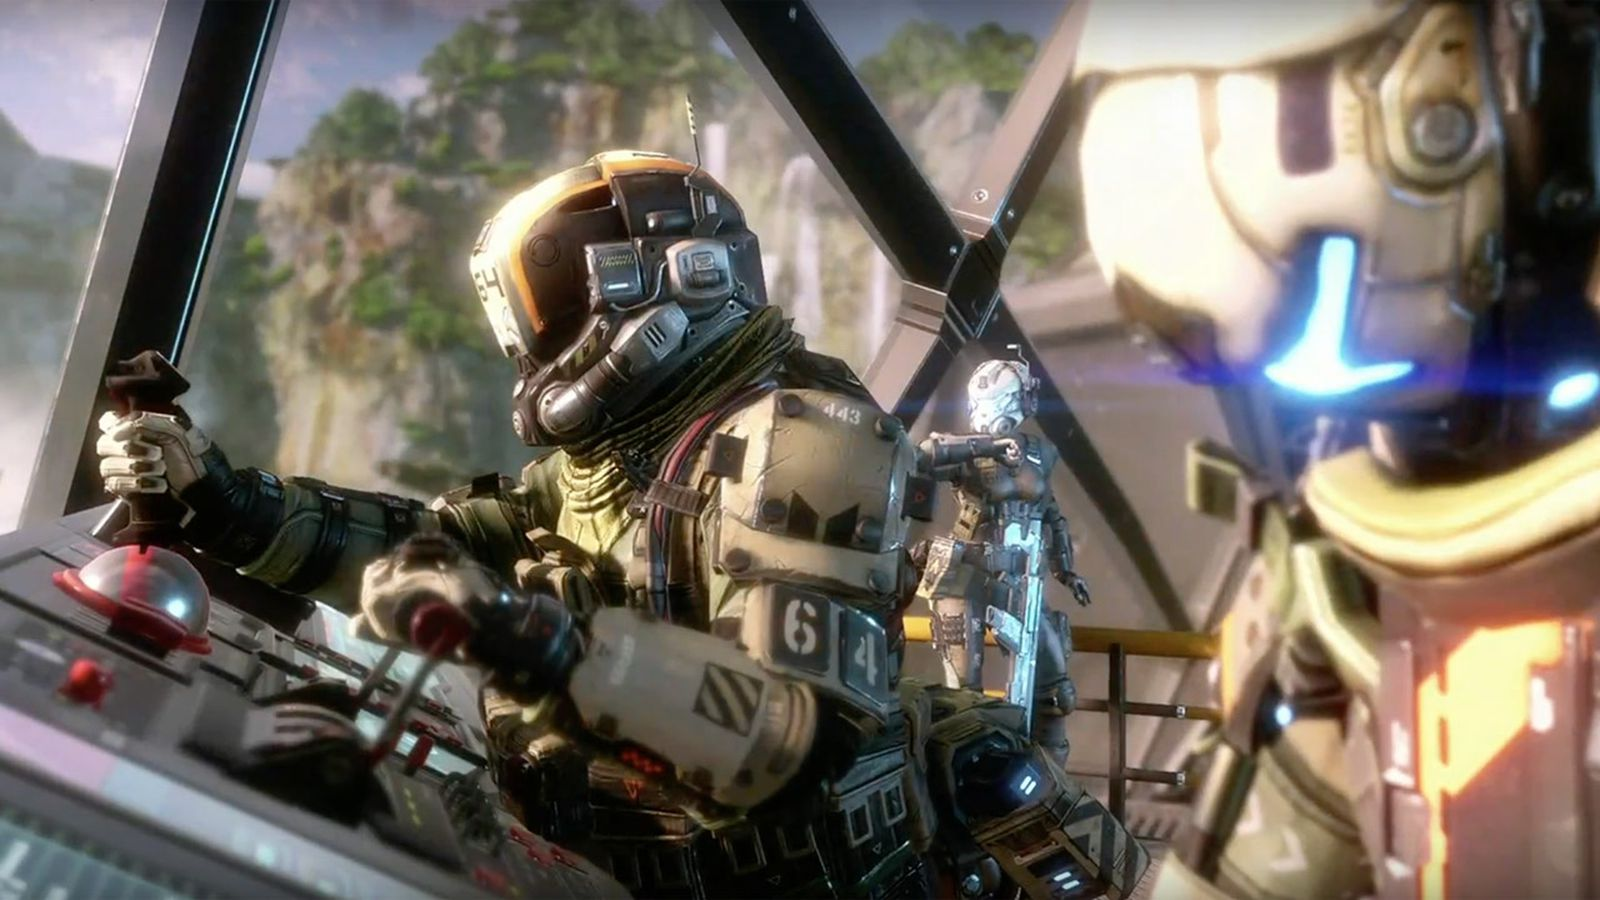 Fall Live Wallpaper Titanfall 2 Launches Oct 28 Comes With Offline Single